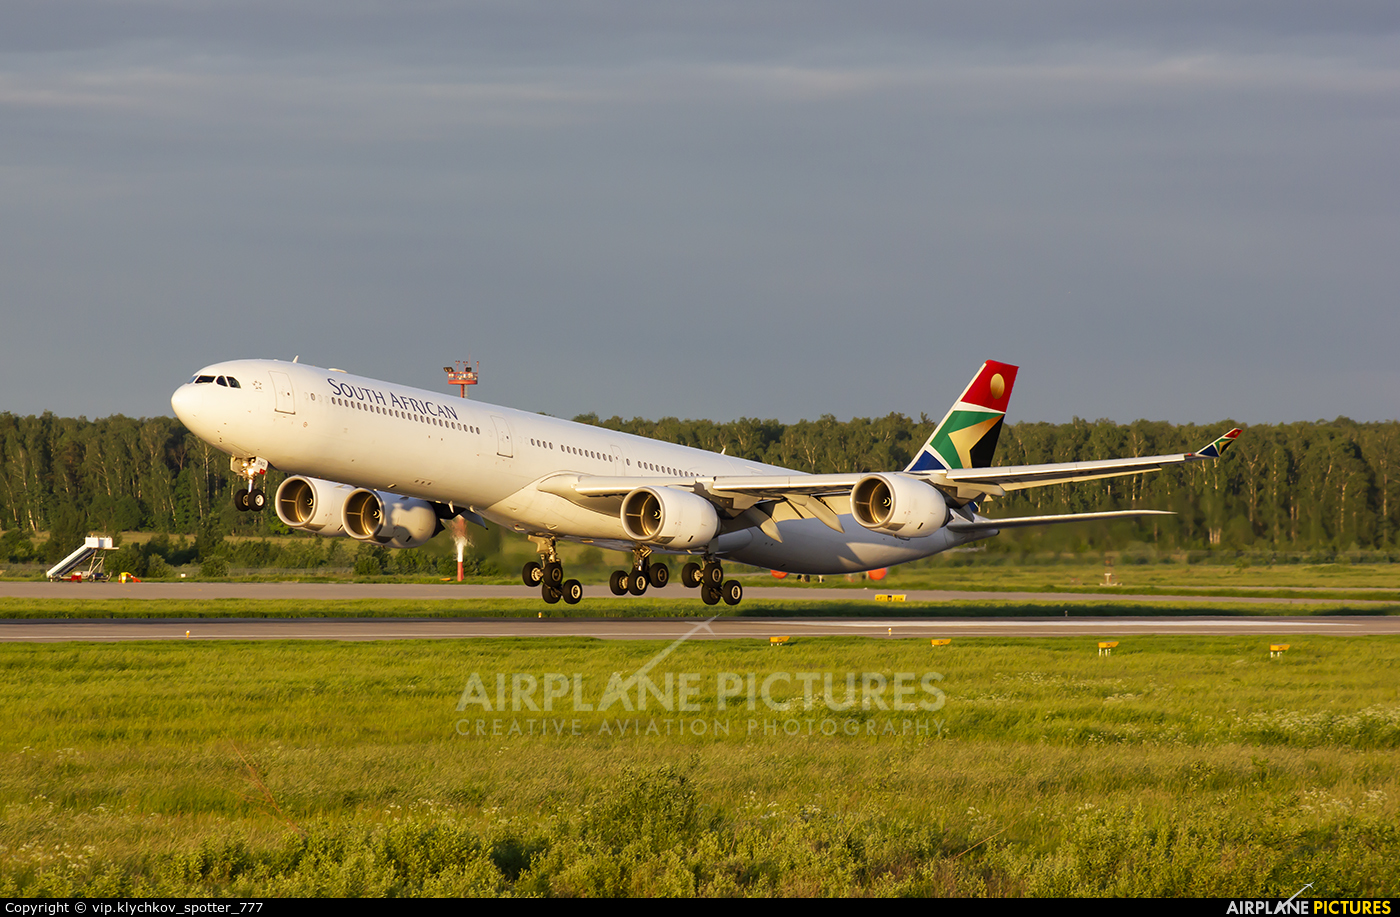 South African Airways ZS-SND aircraft at Moscow - Domodedovo